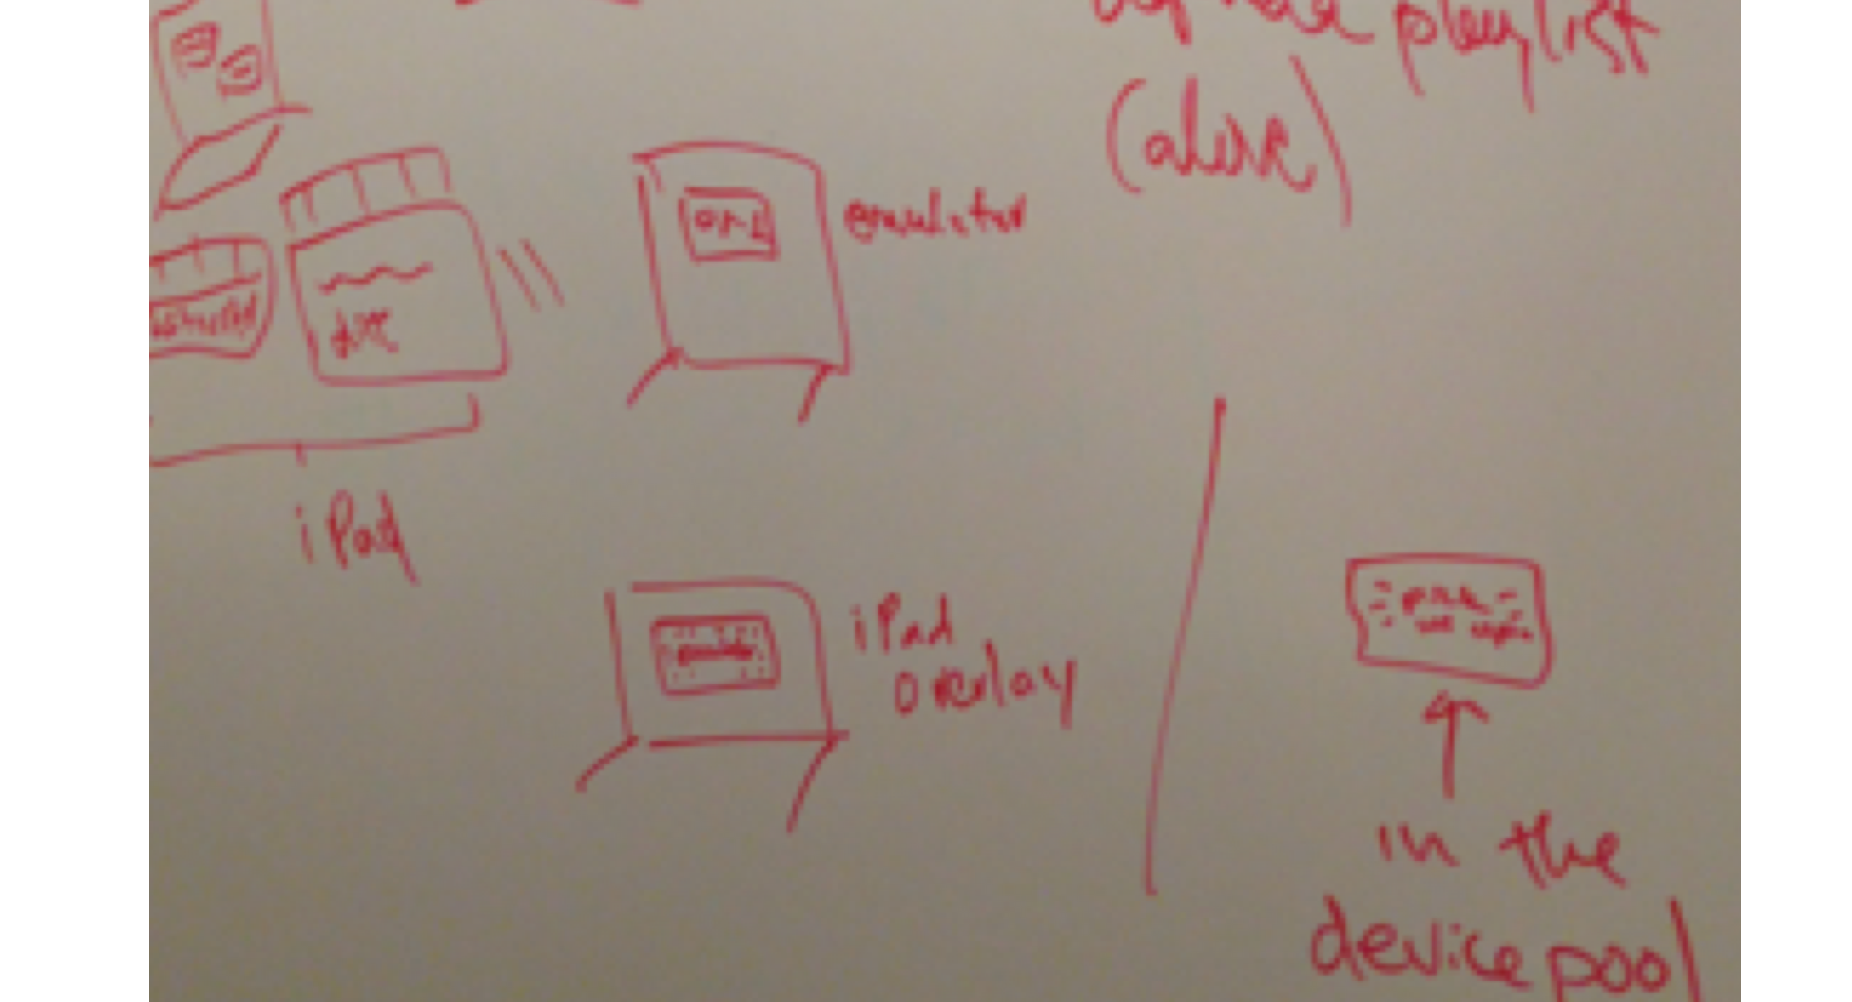 How It Works - I have many screenshots like this - whiteboard scribbles where I record details and ideas. They help me visualize how technology is architected, and what user-facing features it affords.